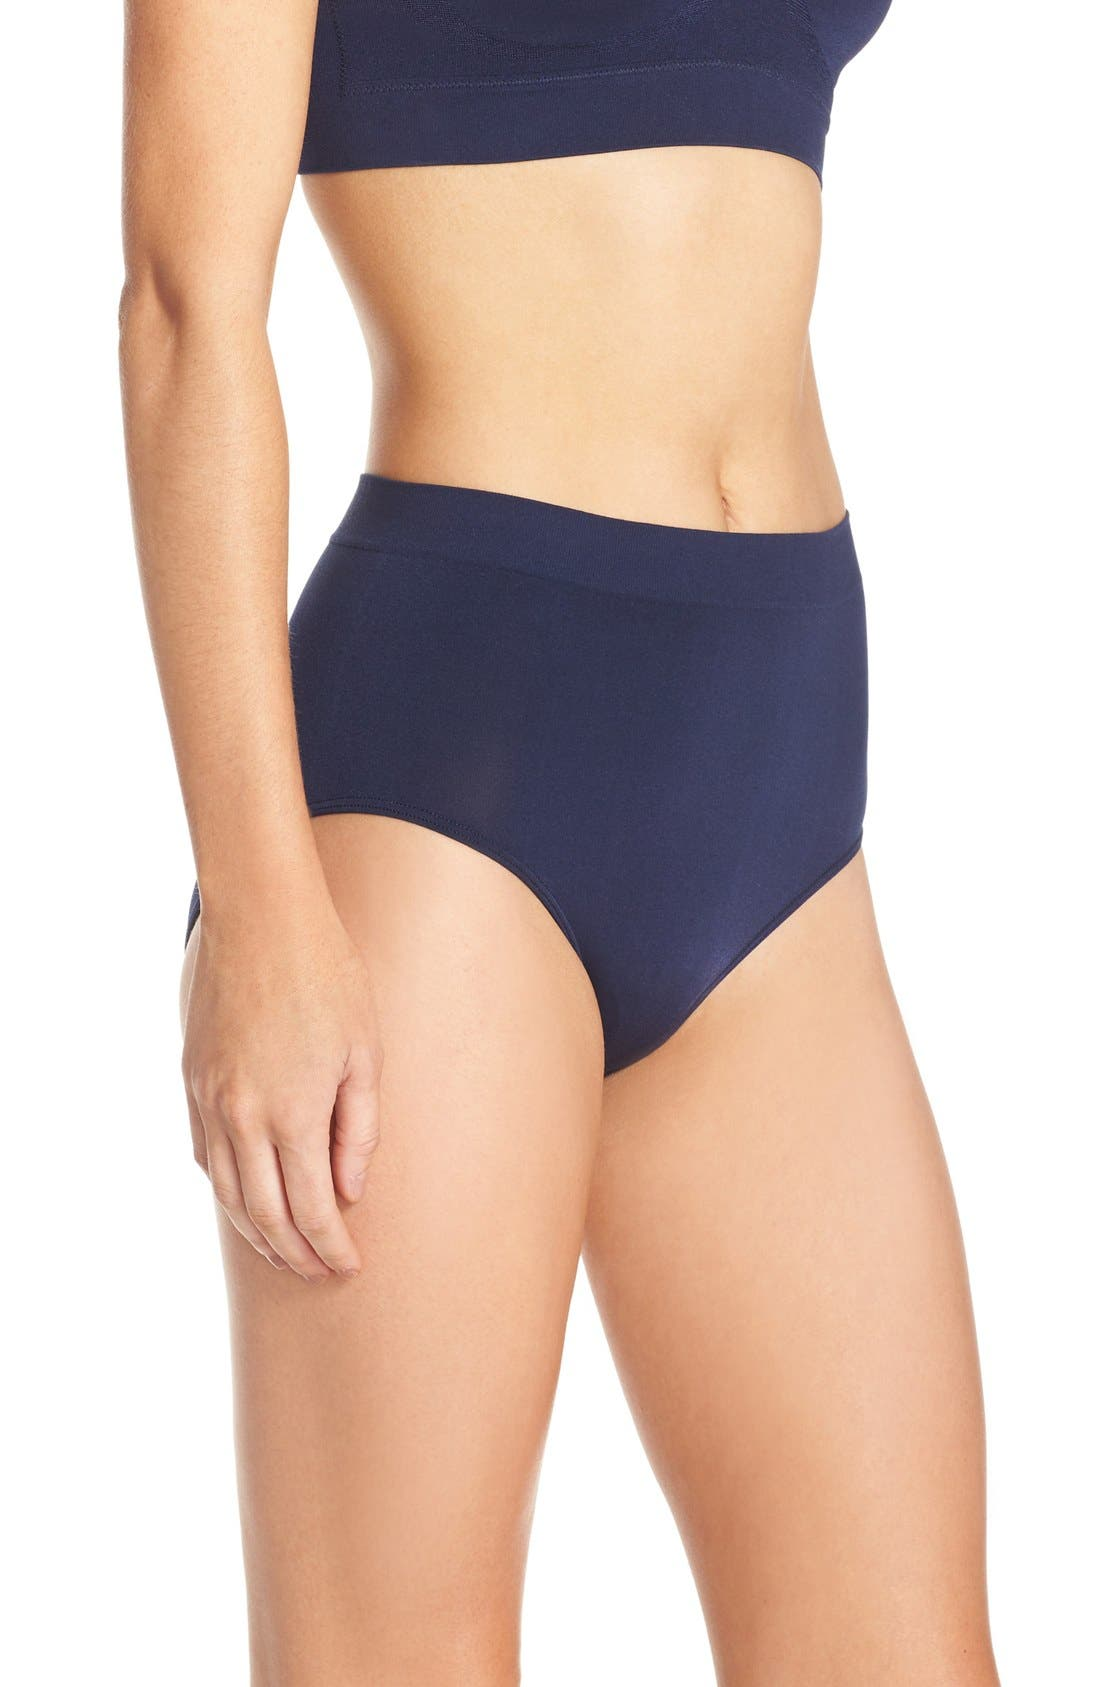 B Smooth Briefs,                             Alternate thumbnail 163, color,